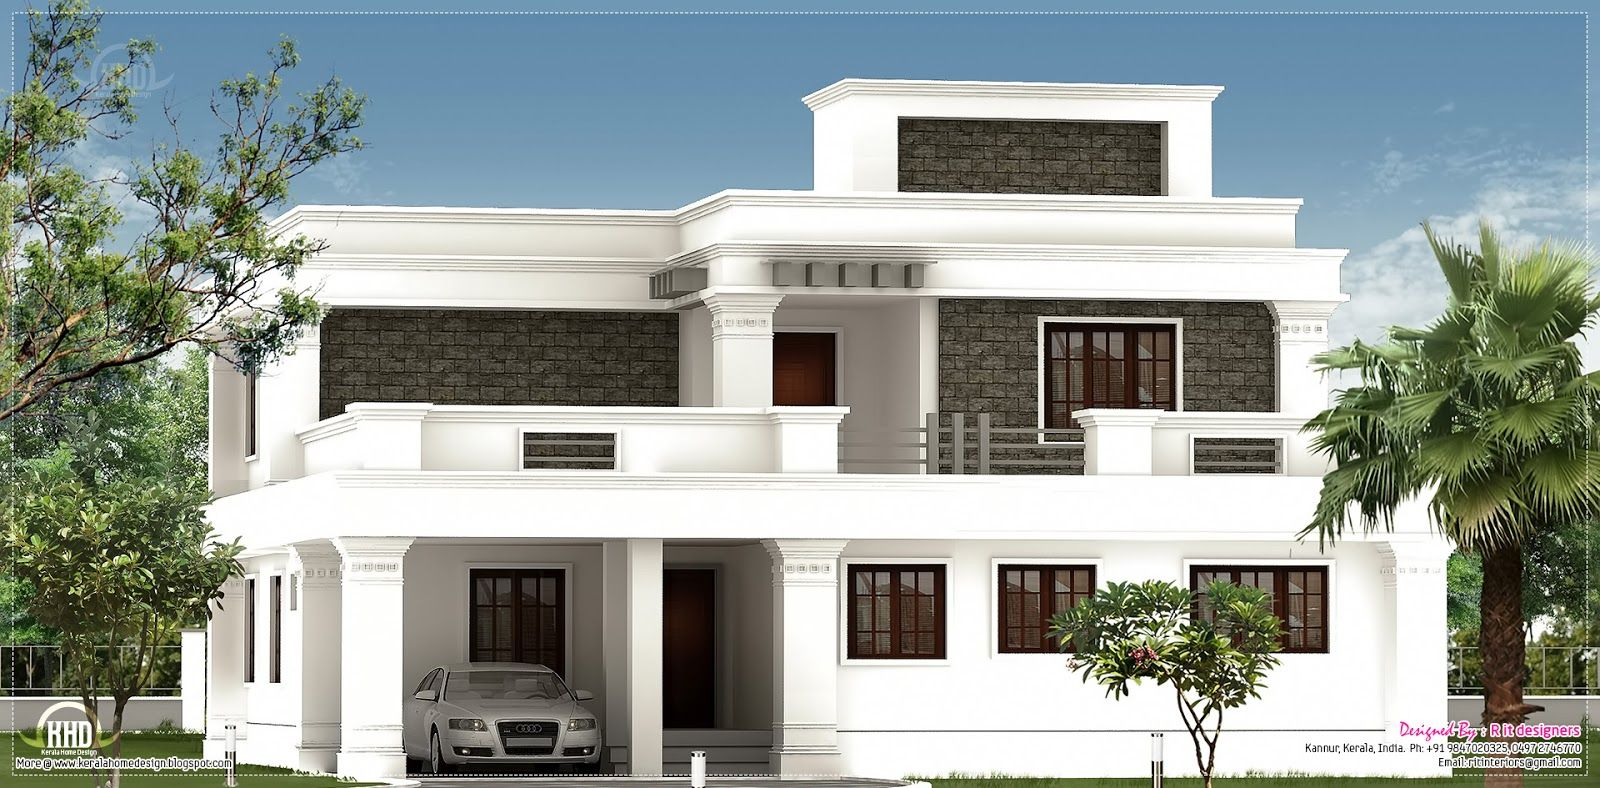 Flat roof homes designs flat roof villa exterior in 2400 for Kerala home design flat roof elevation